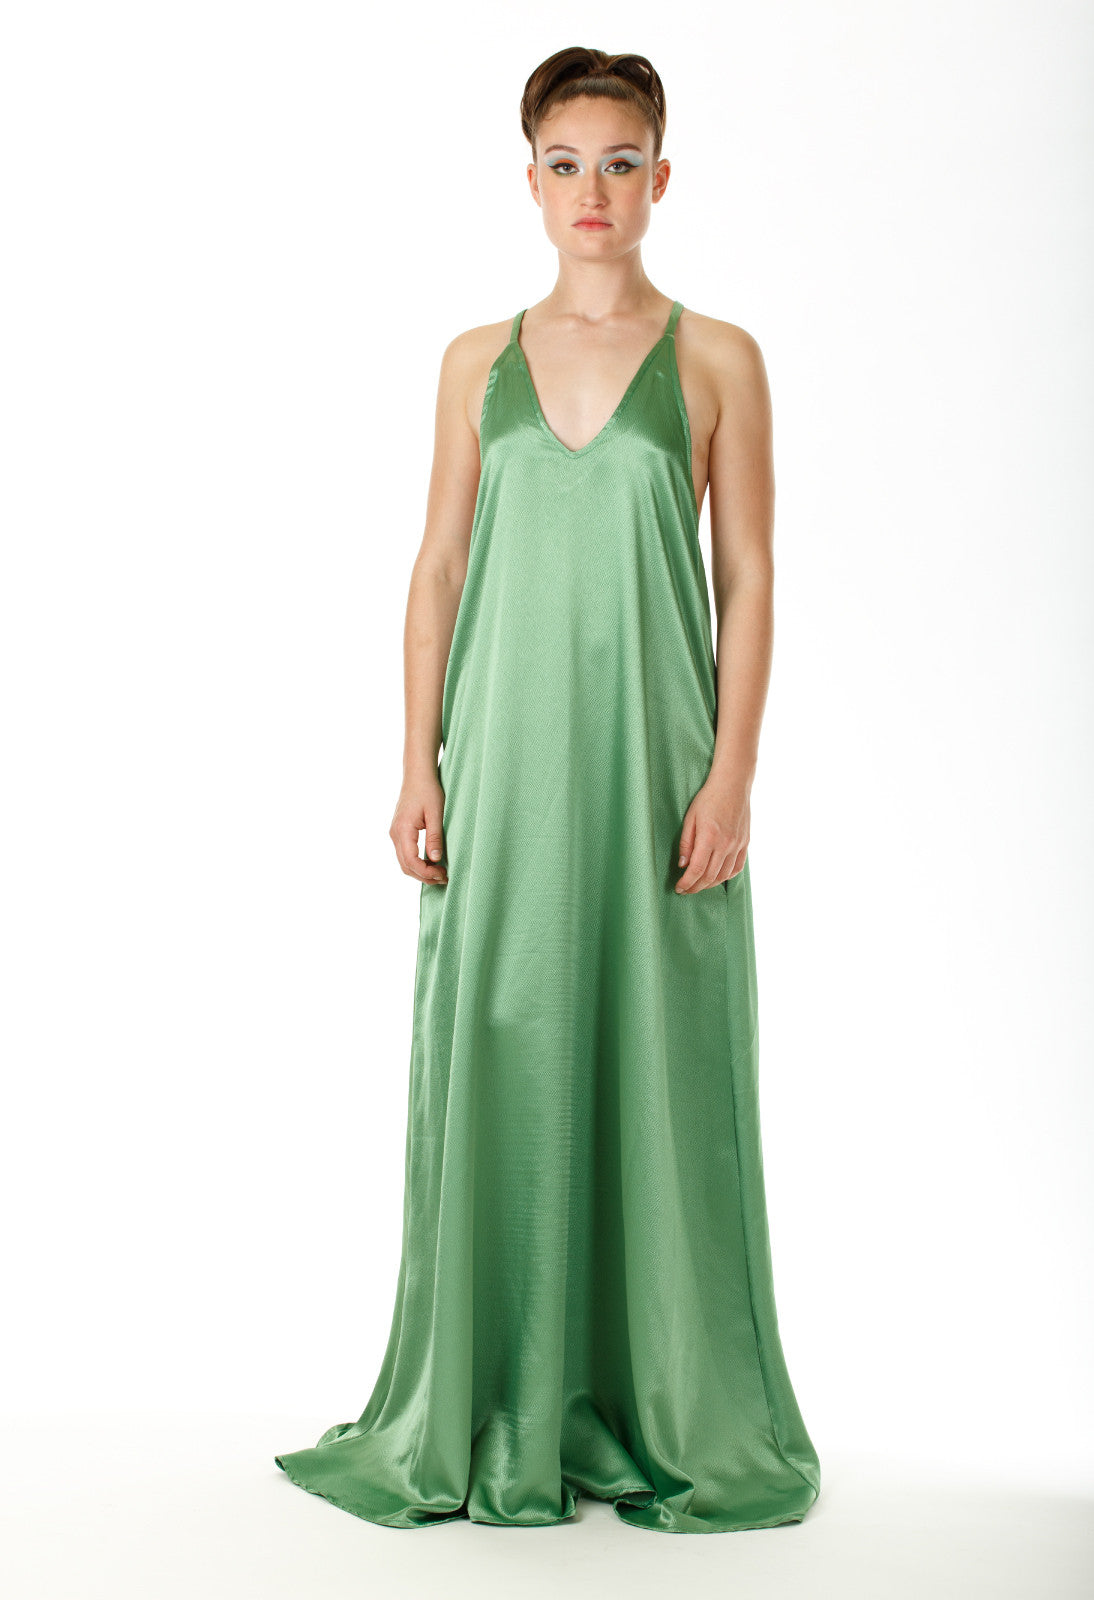 Yennah Open Back Maxi Dress - Angelica Timas